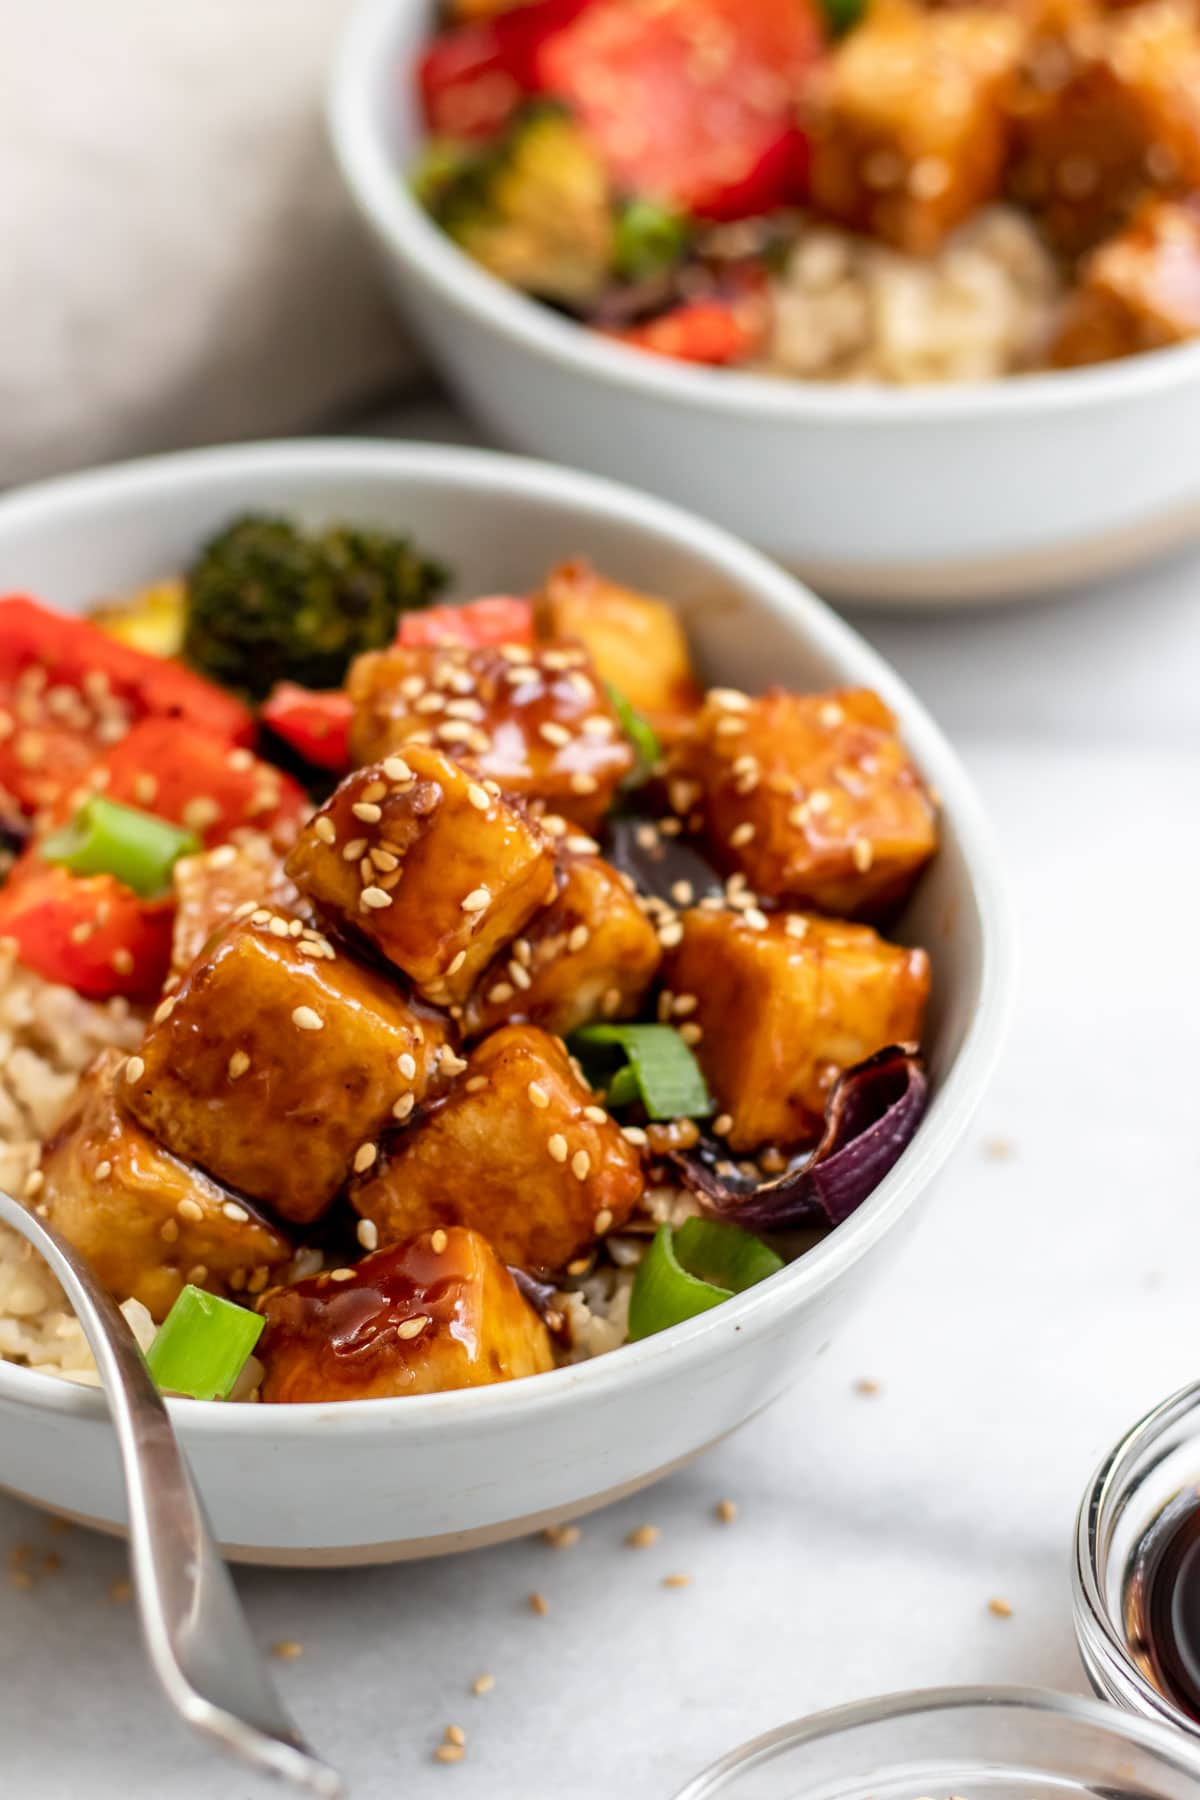 Sesame tofu with sesame seeds in a small bowl.